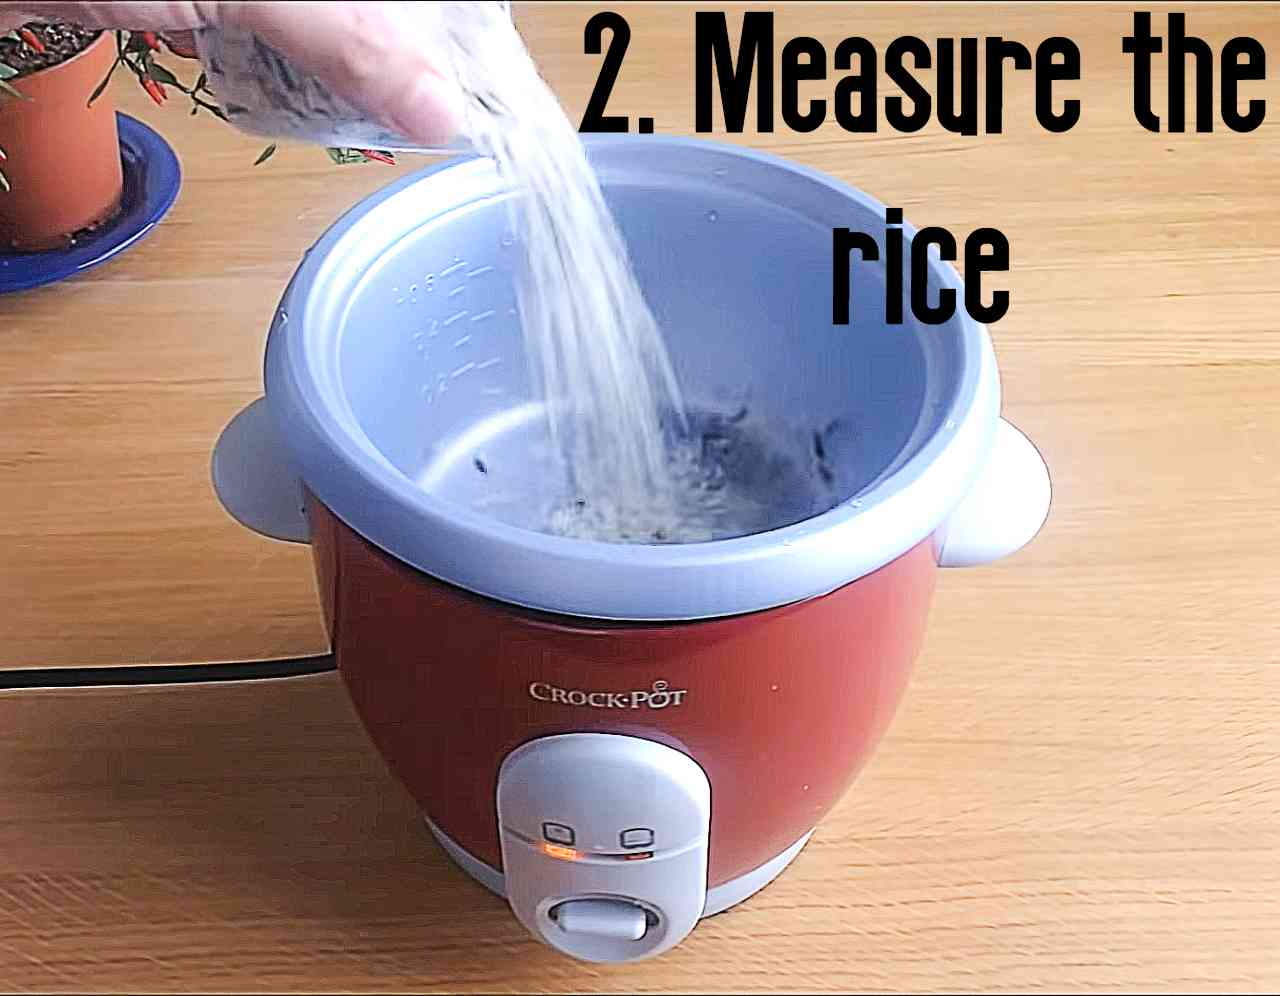 Measure the rice